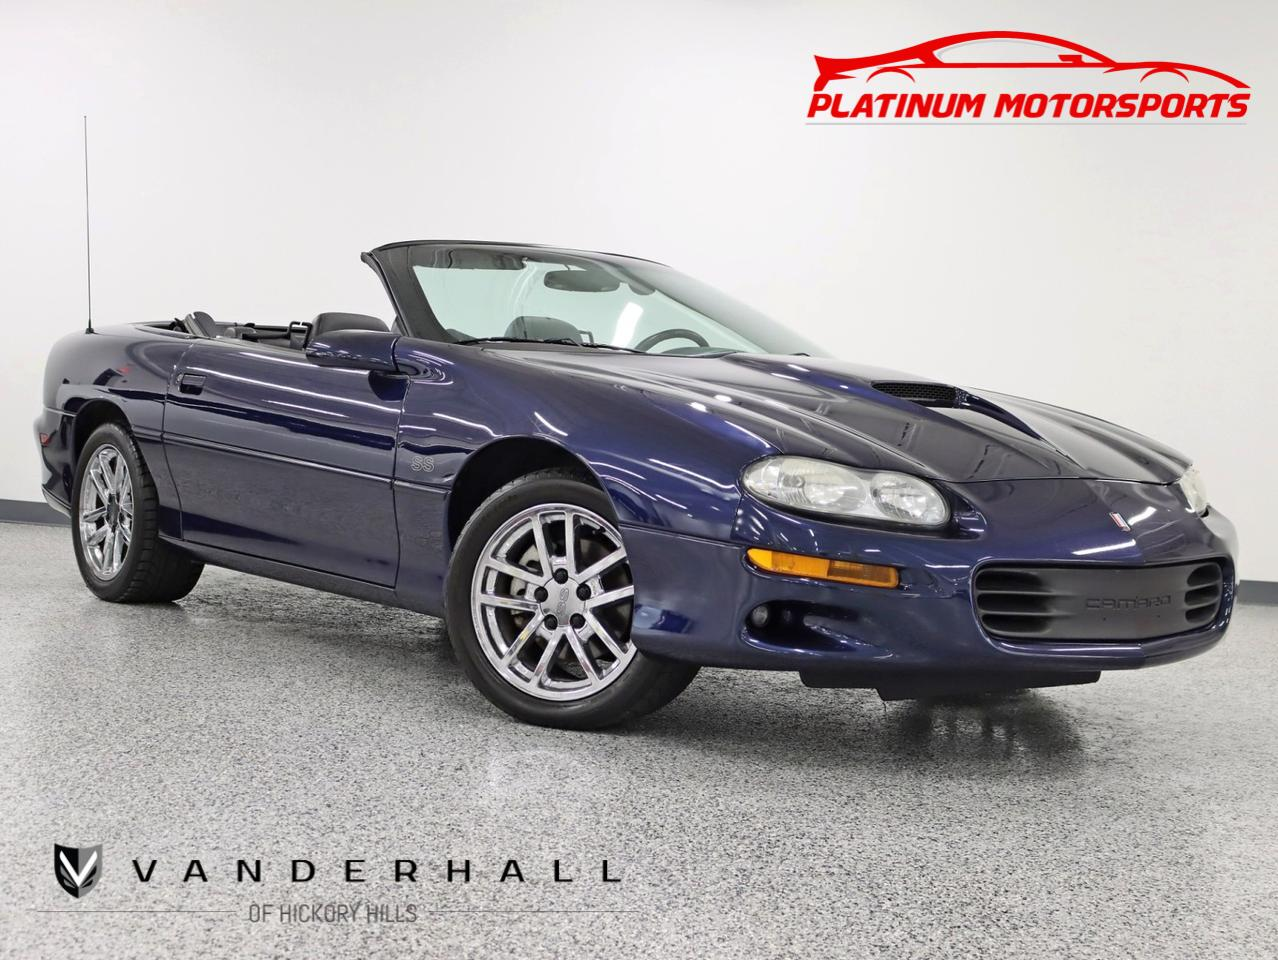 2002 Chevrolet Camaro SS Convertible Rare Hurst 6 Speed 1 of 86 Produced Leather Chrome Factory Rims Hickory Hills IL